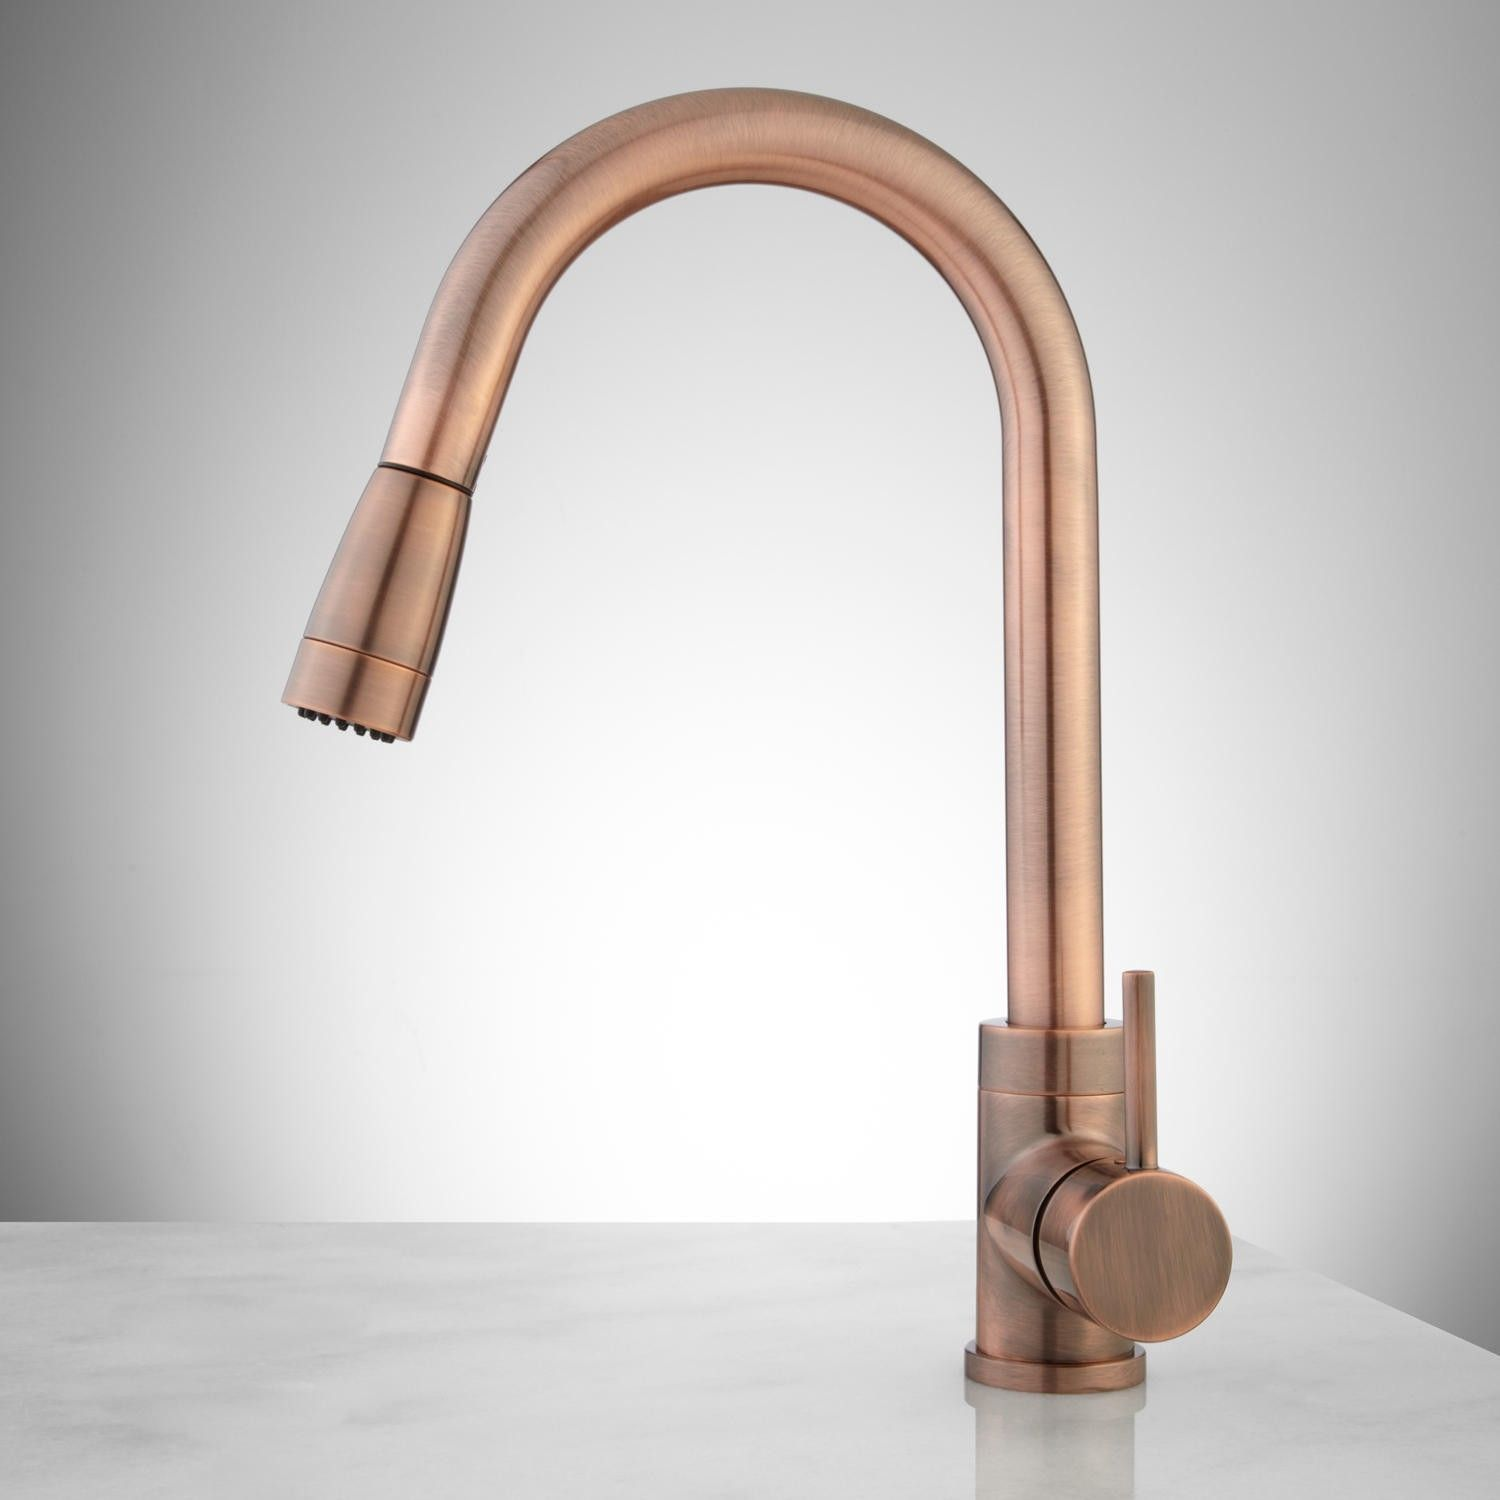 Brass Colored Kitchen Faucets | Contemporary Kitchen Faucets ...